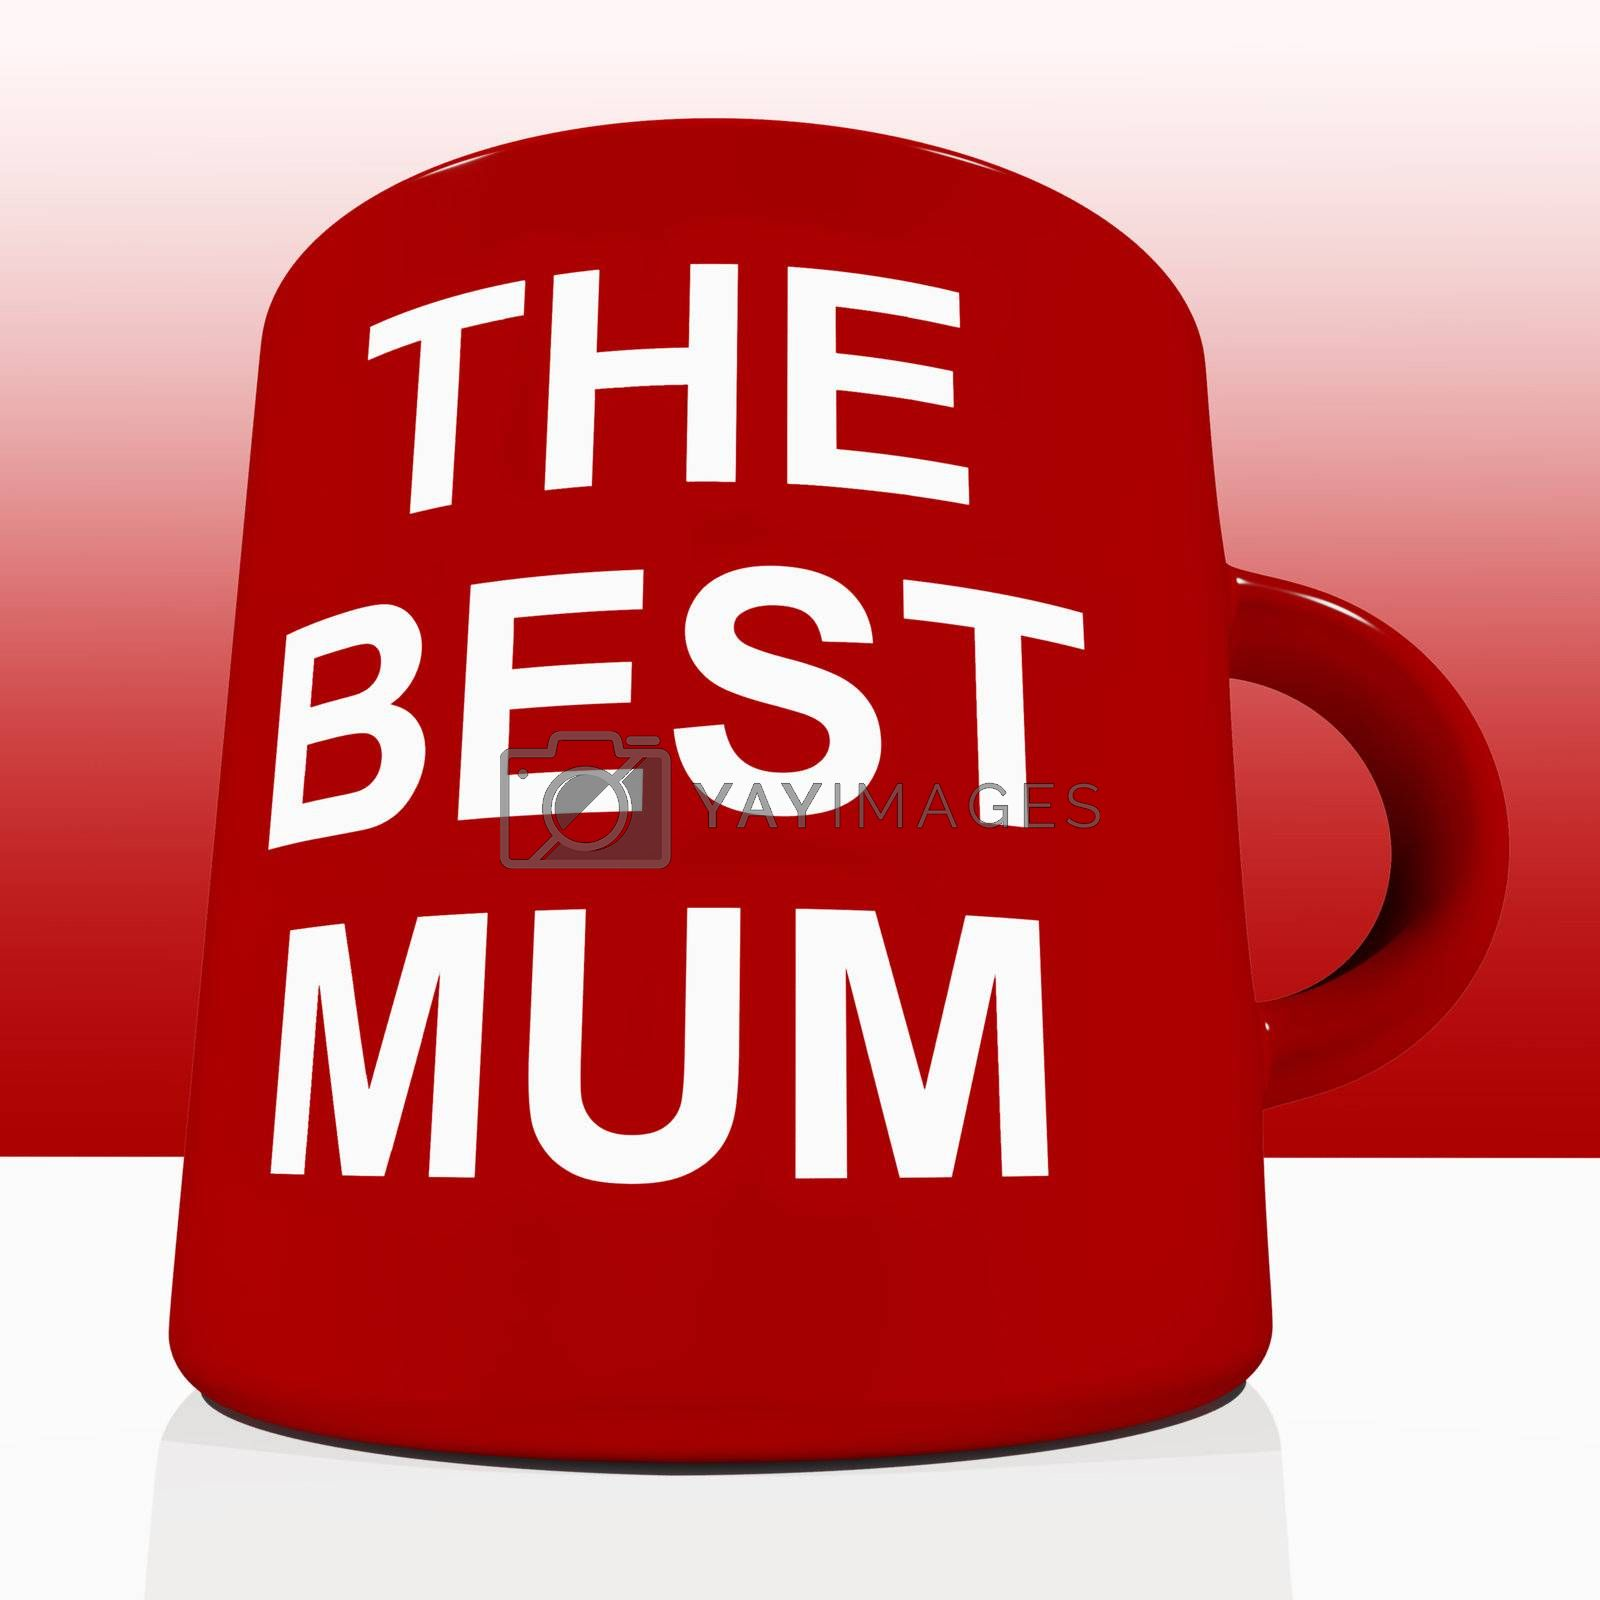 Red Best Mum Mug On Table Showing Loving Mother